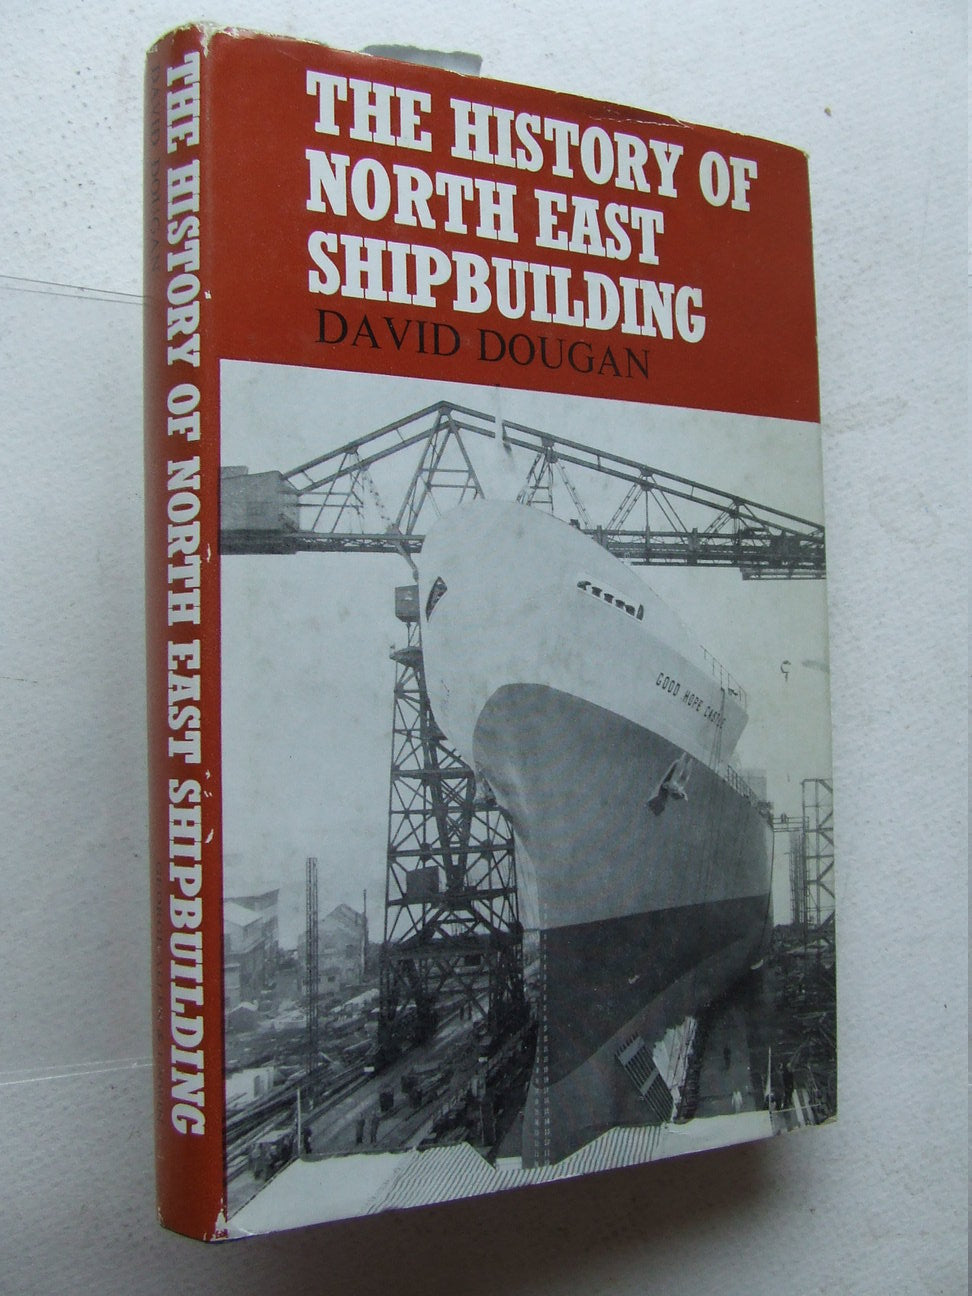 The History of North East Shipbuilding